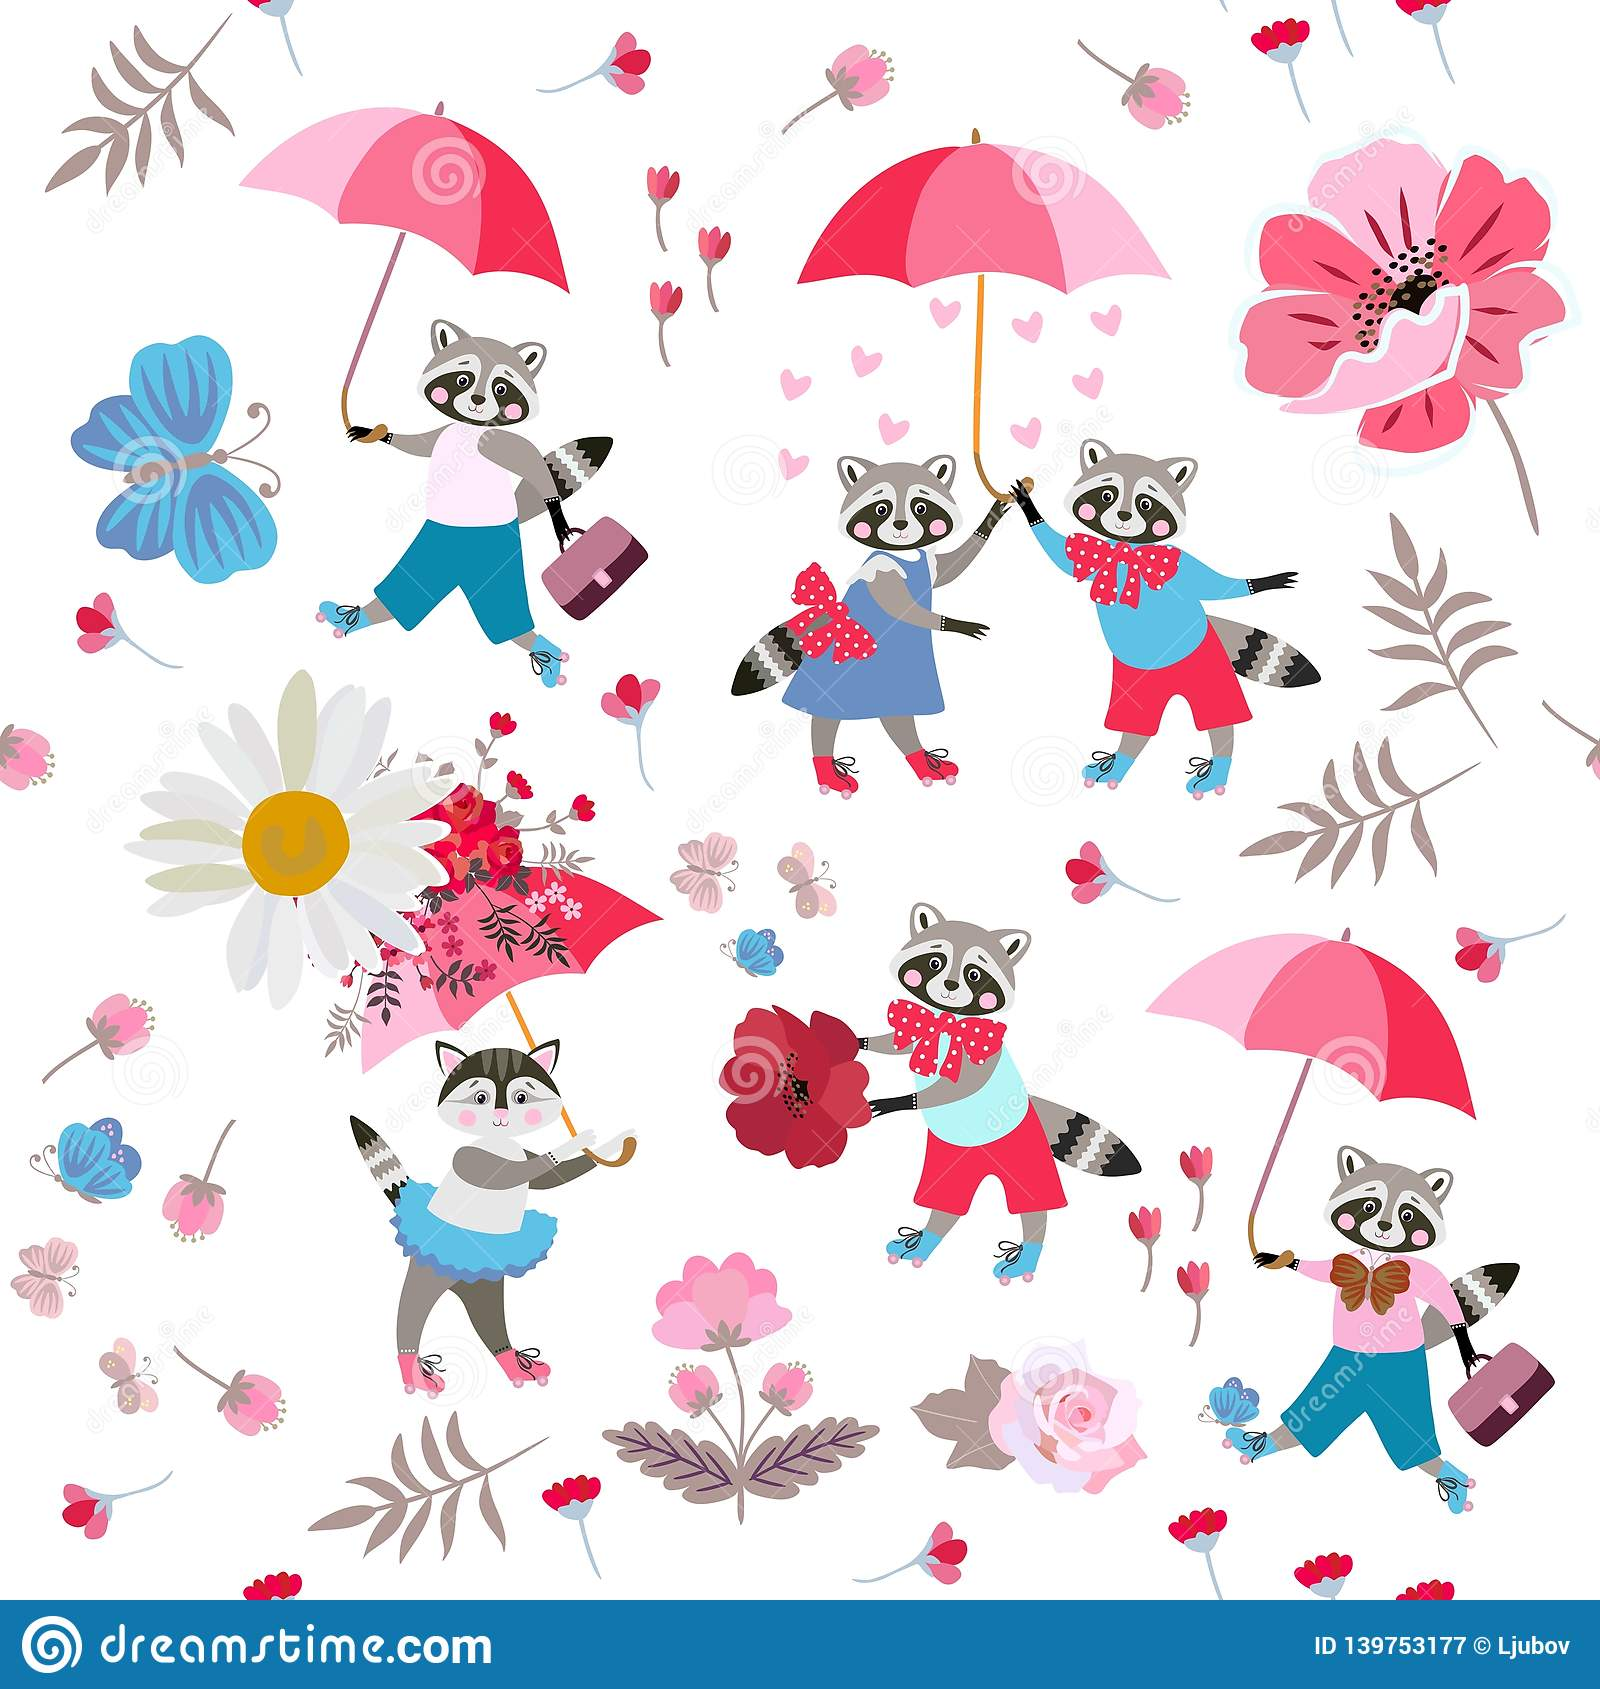 Funny little animals with umbrellas, butterflies, hearts, leaves and flowers on white background. Seamless pattern for baby